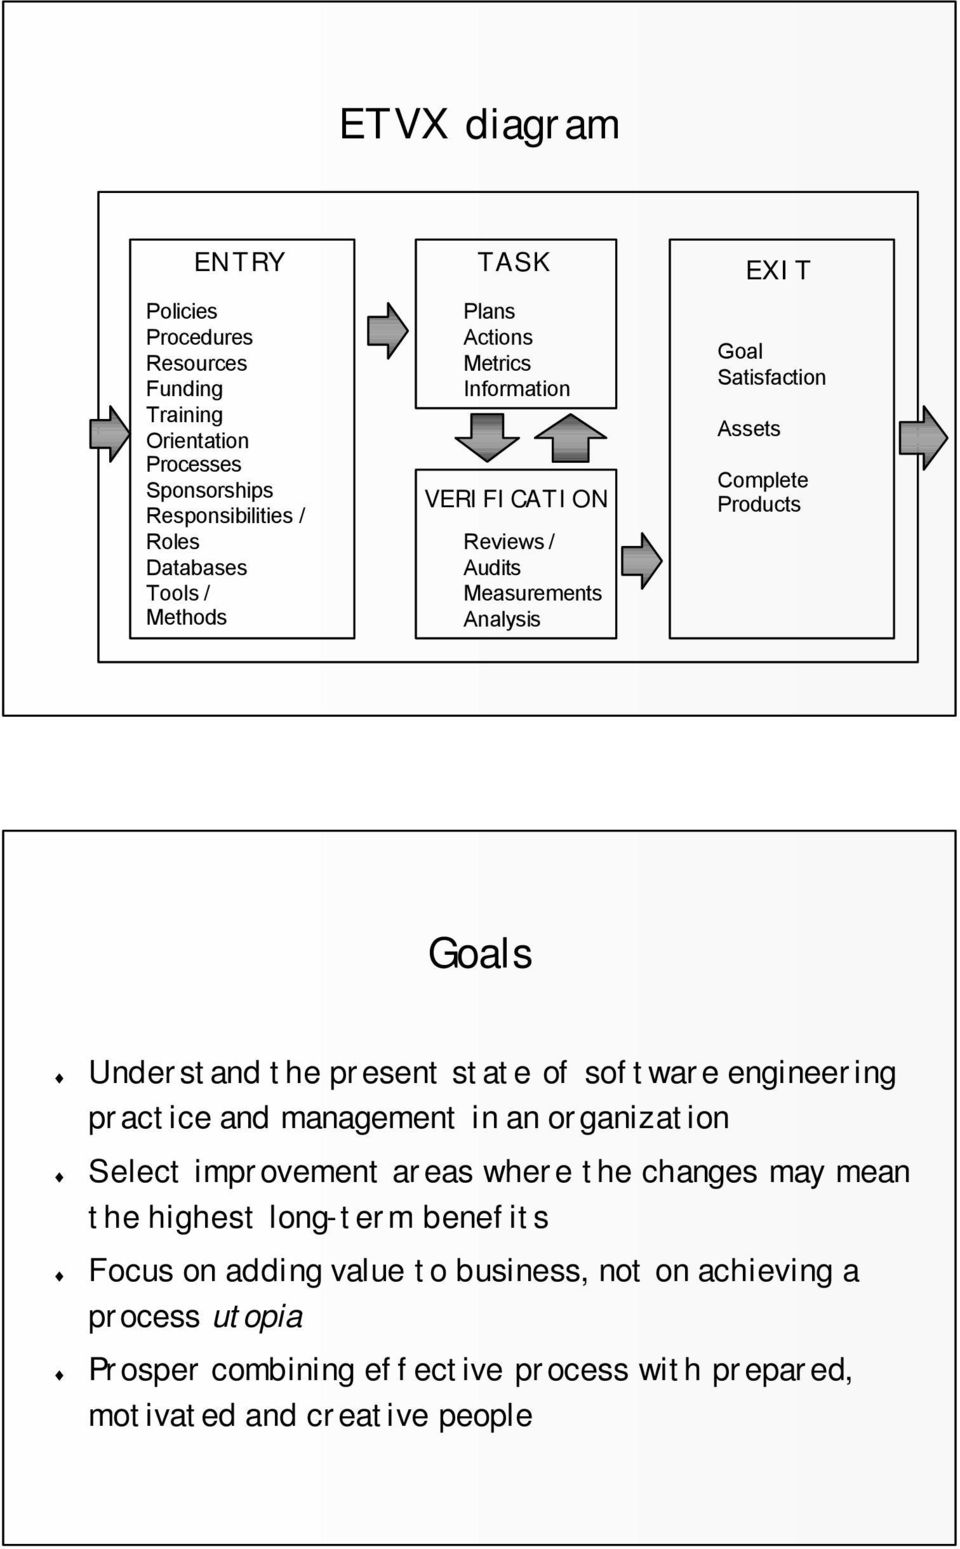 the present state of software engineering practice and management in an organization Select improvement areas where the changes may mean the highest